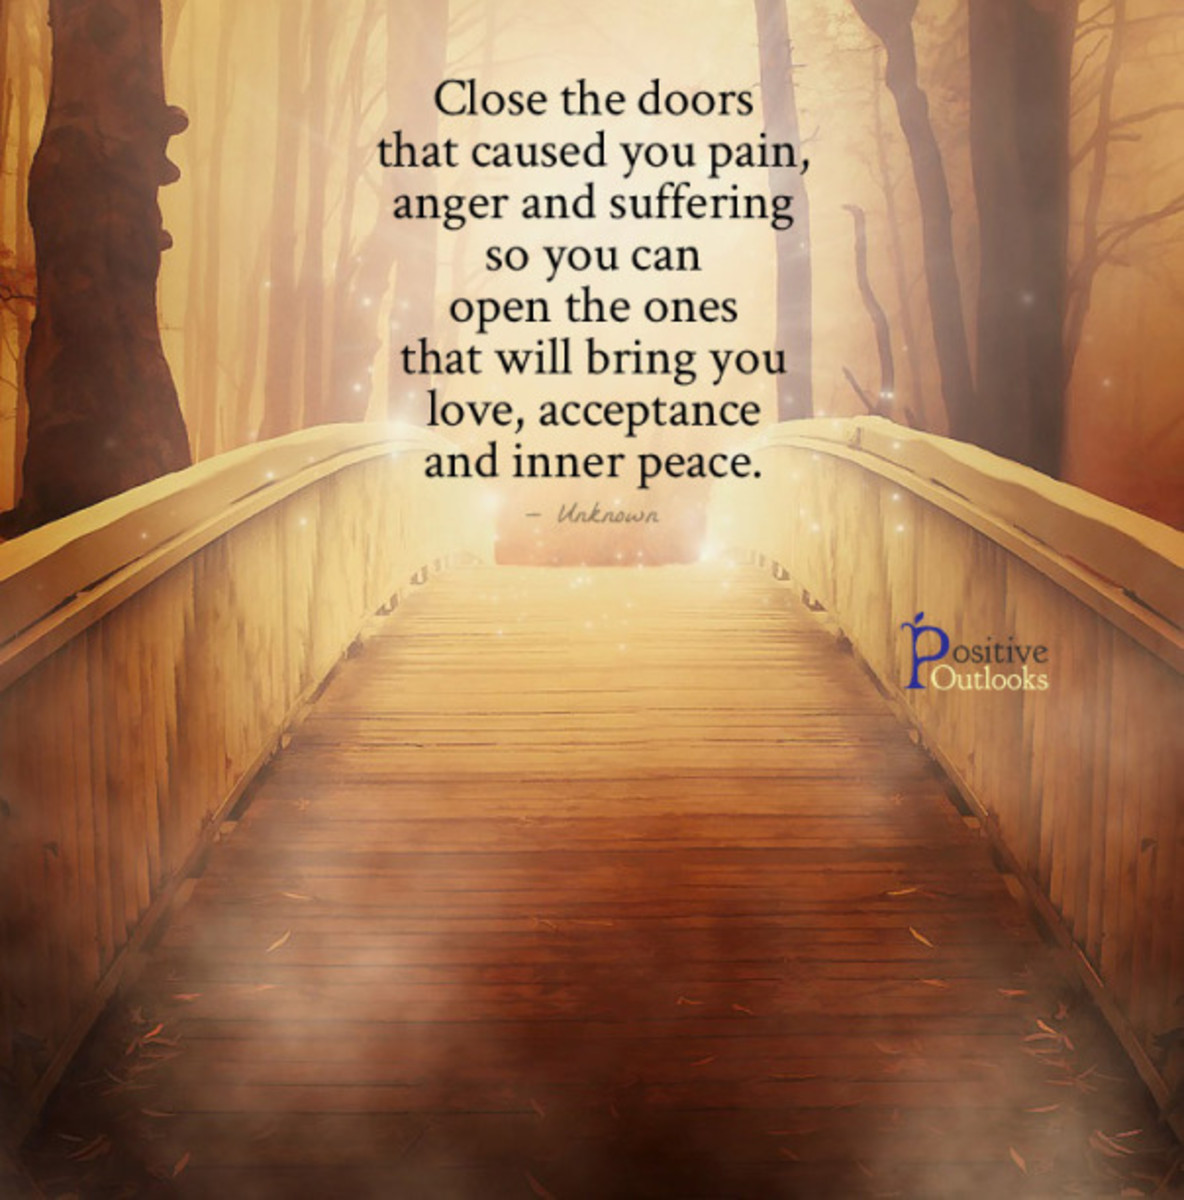 We Should Close the Doors that Cause Pain, and Suffering. Open the ones that will Bring Love and Inner Peace